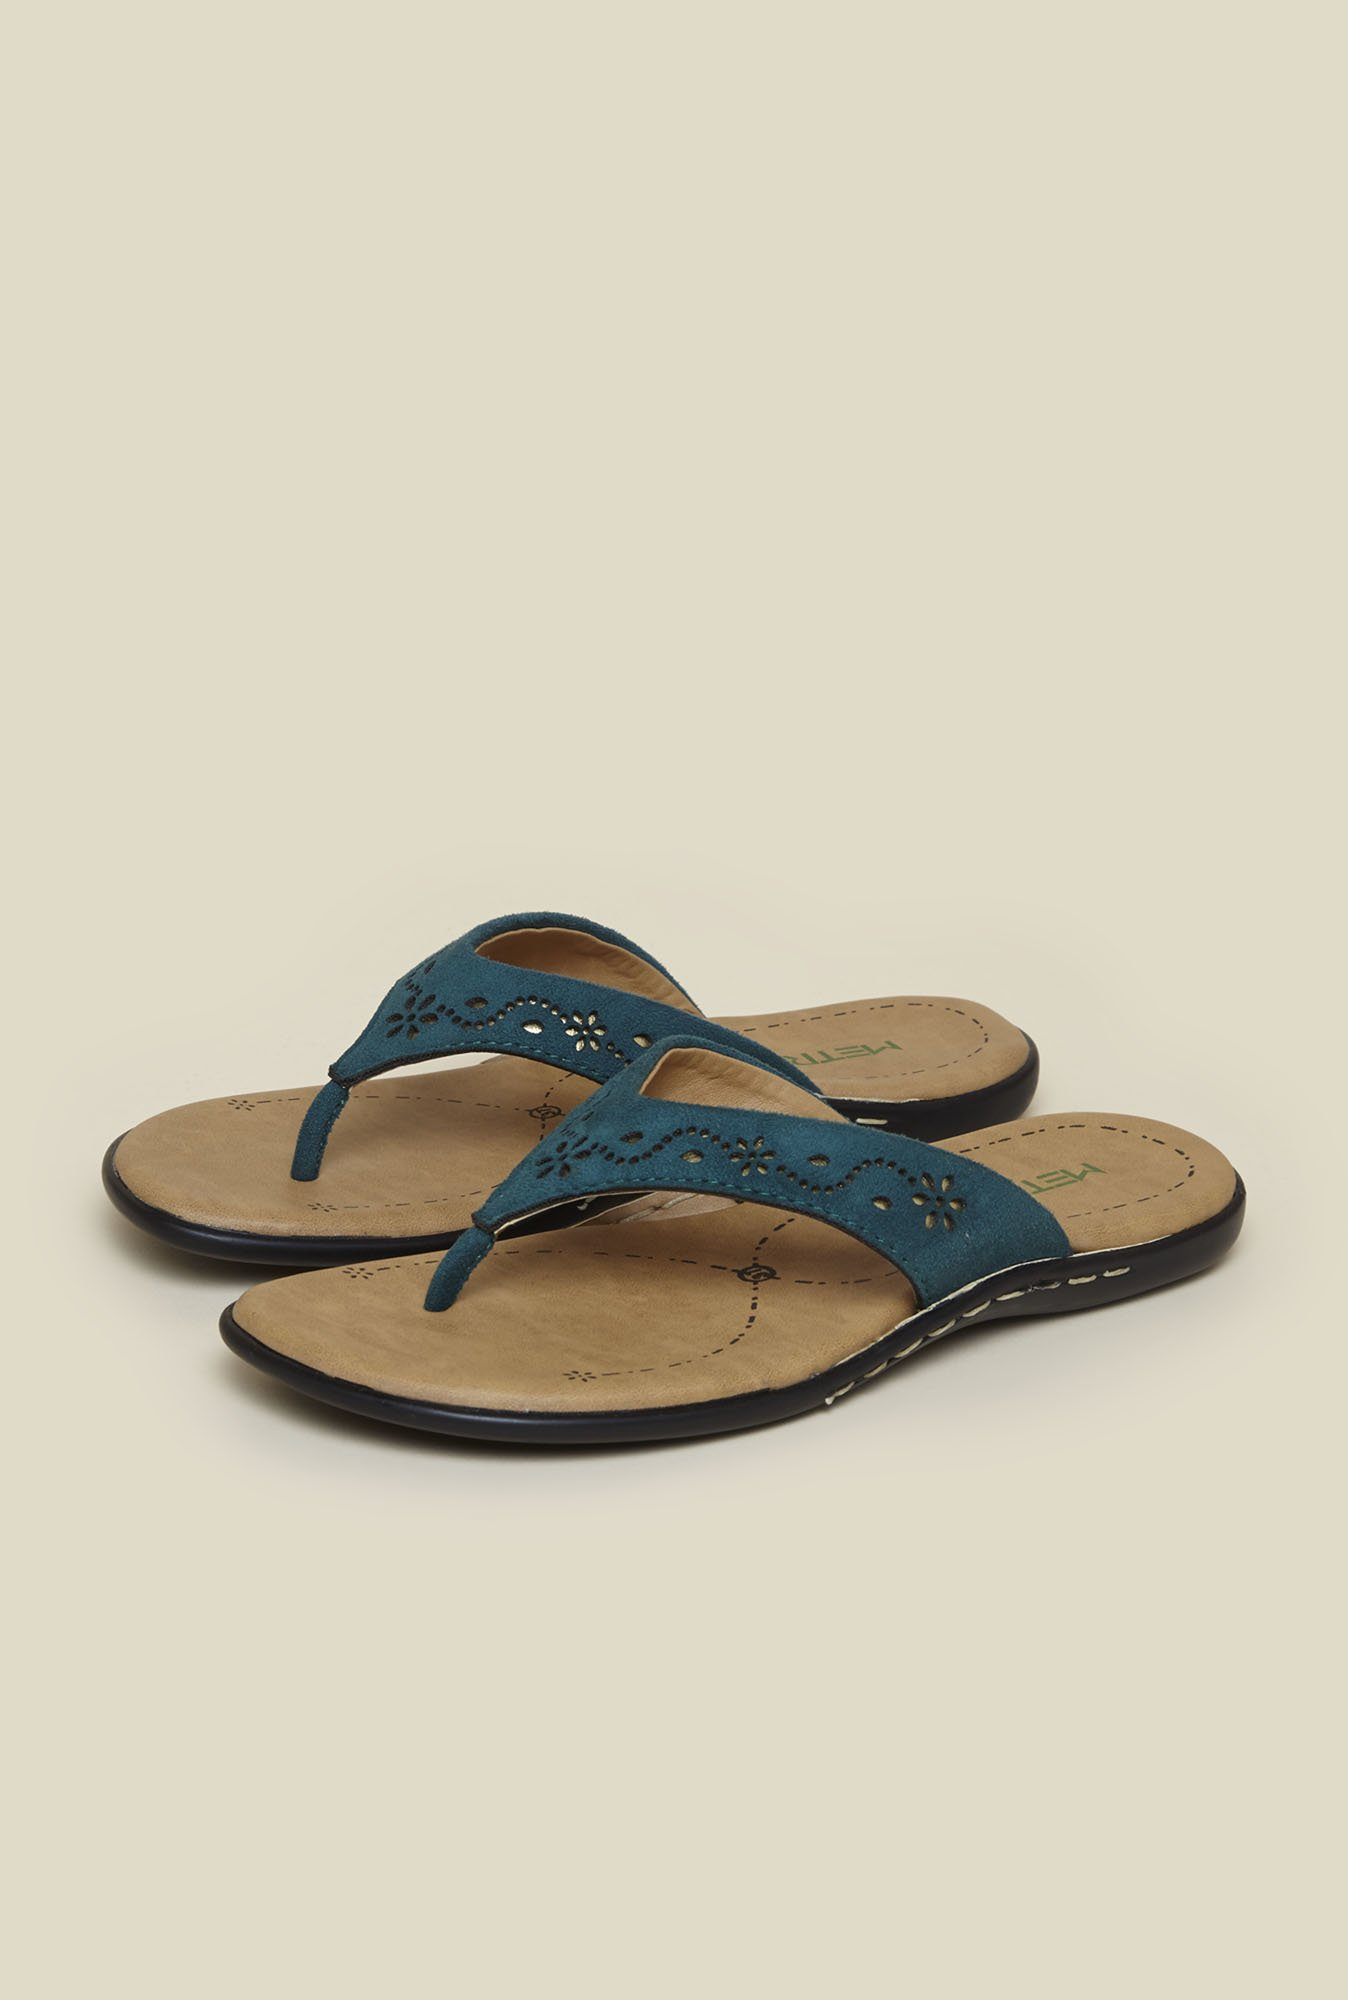 Metro Blue Floral Design Slip-On Sandals